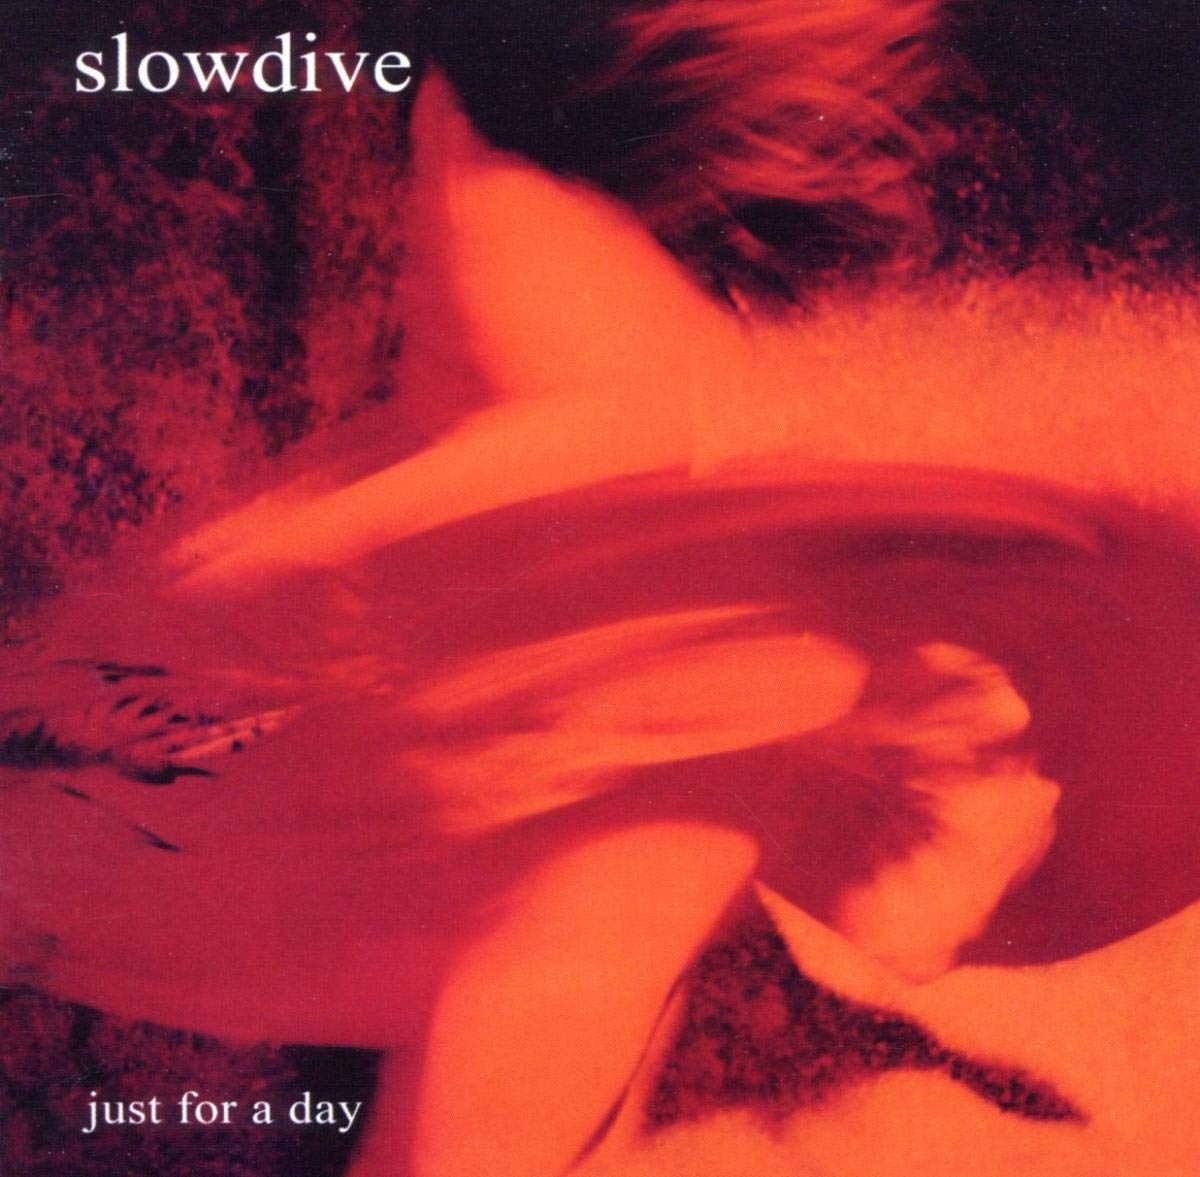 SLOWDIVE - Just for a Day - Amazon.com Music